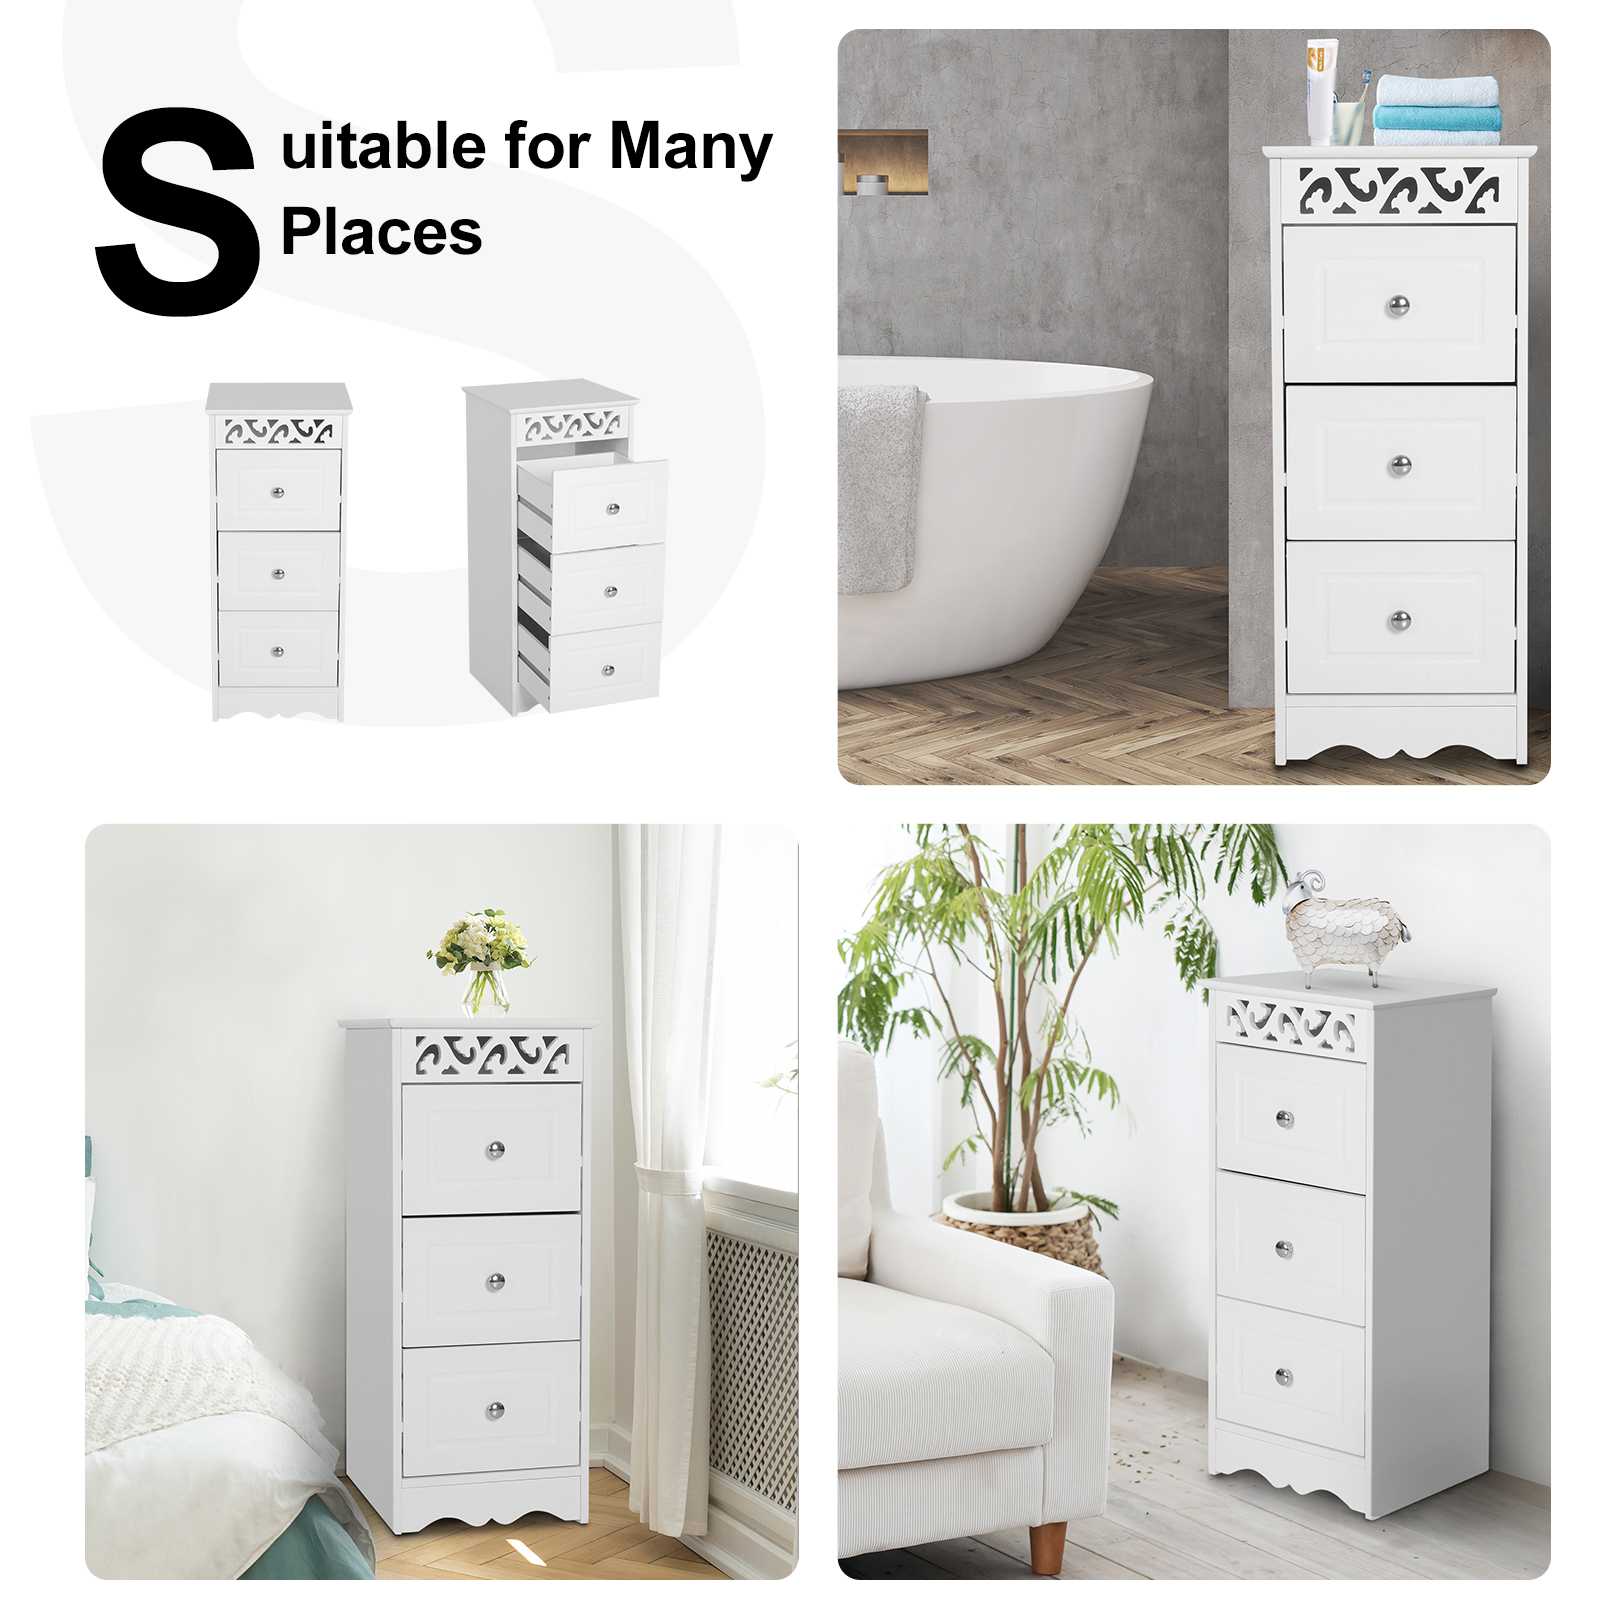 Bathroom-Cabinet-Corner-Shelf-Unit-Drawers-Tower-Cupboard-Wood-Storage-White thumbnail 6